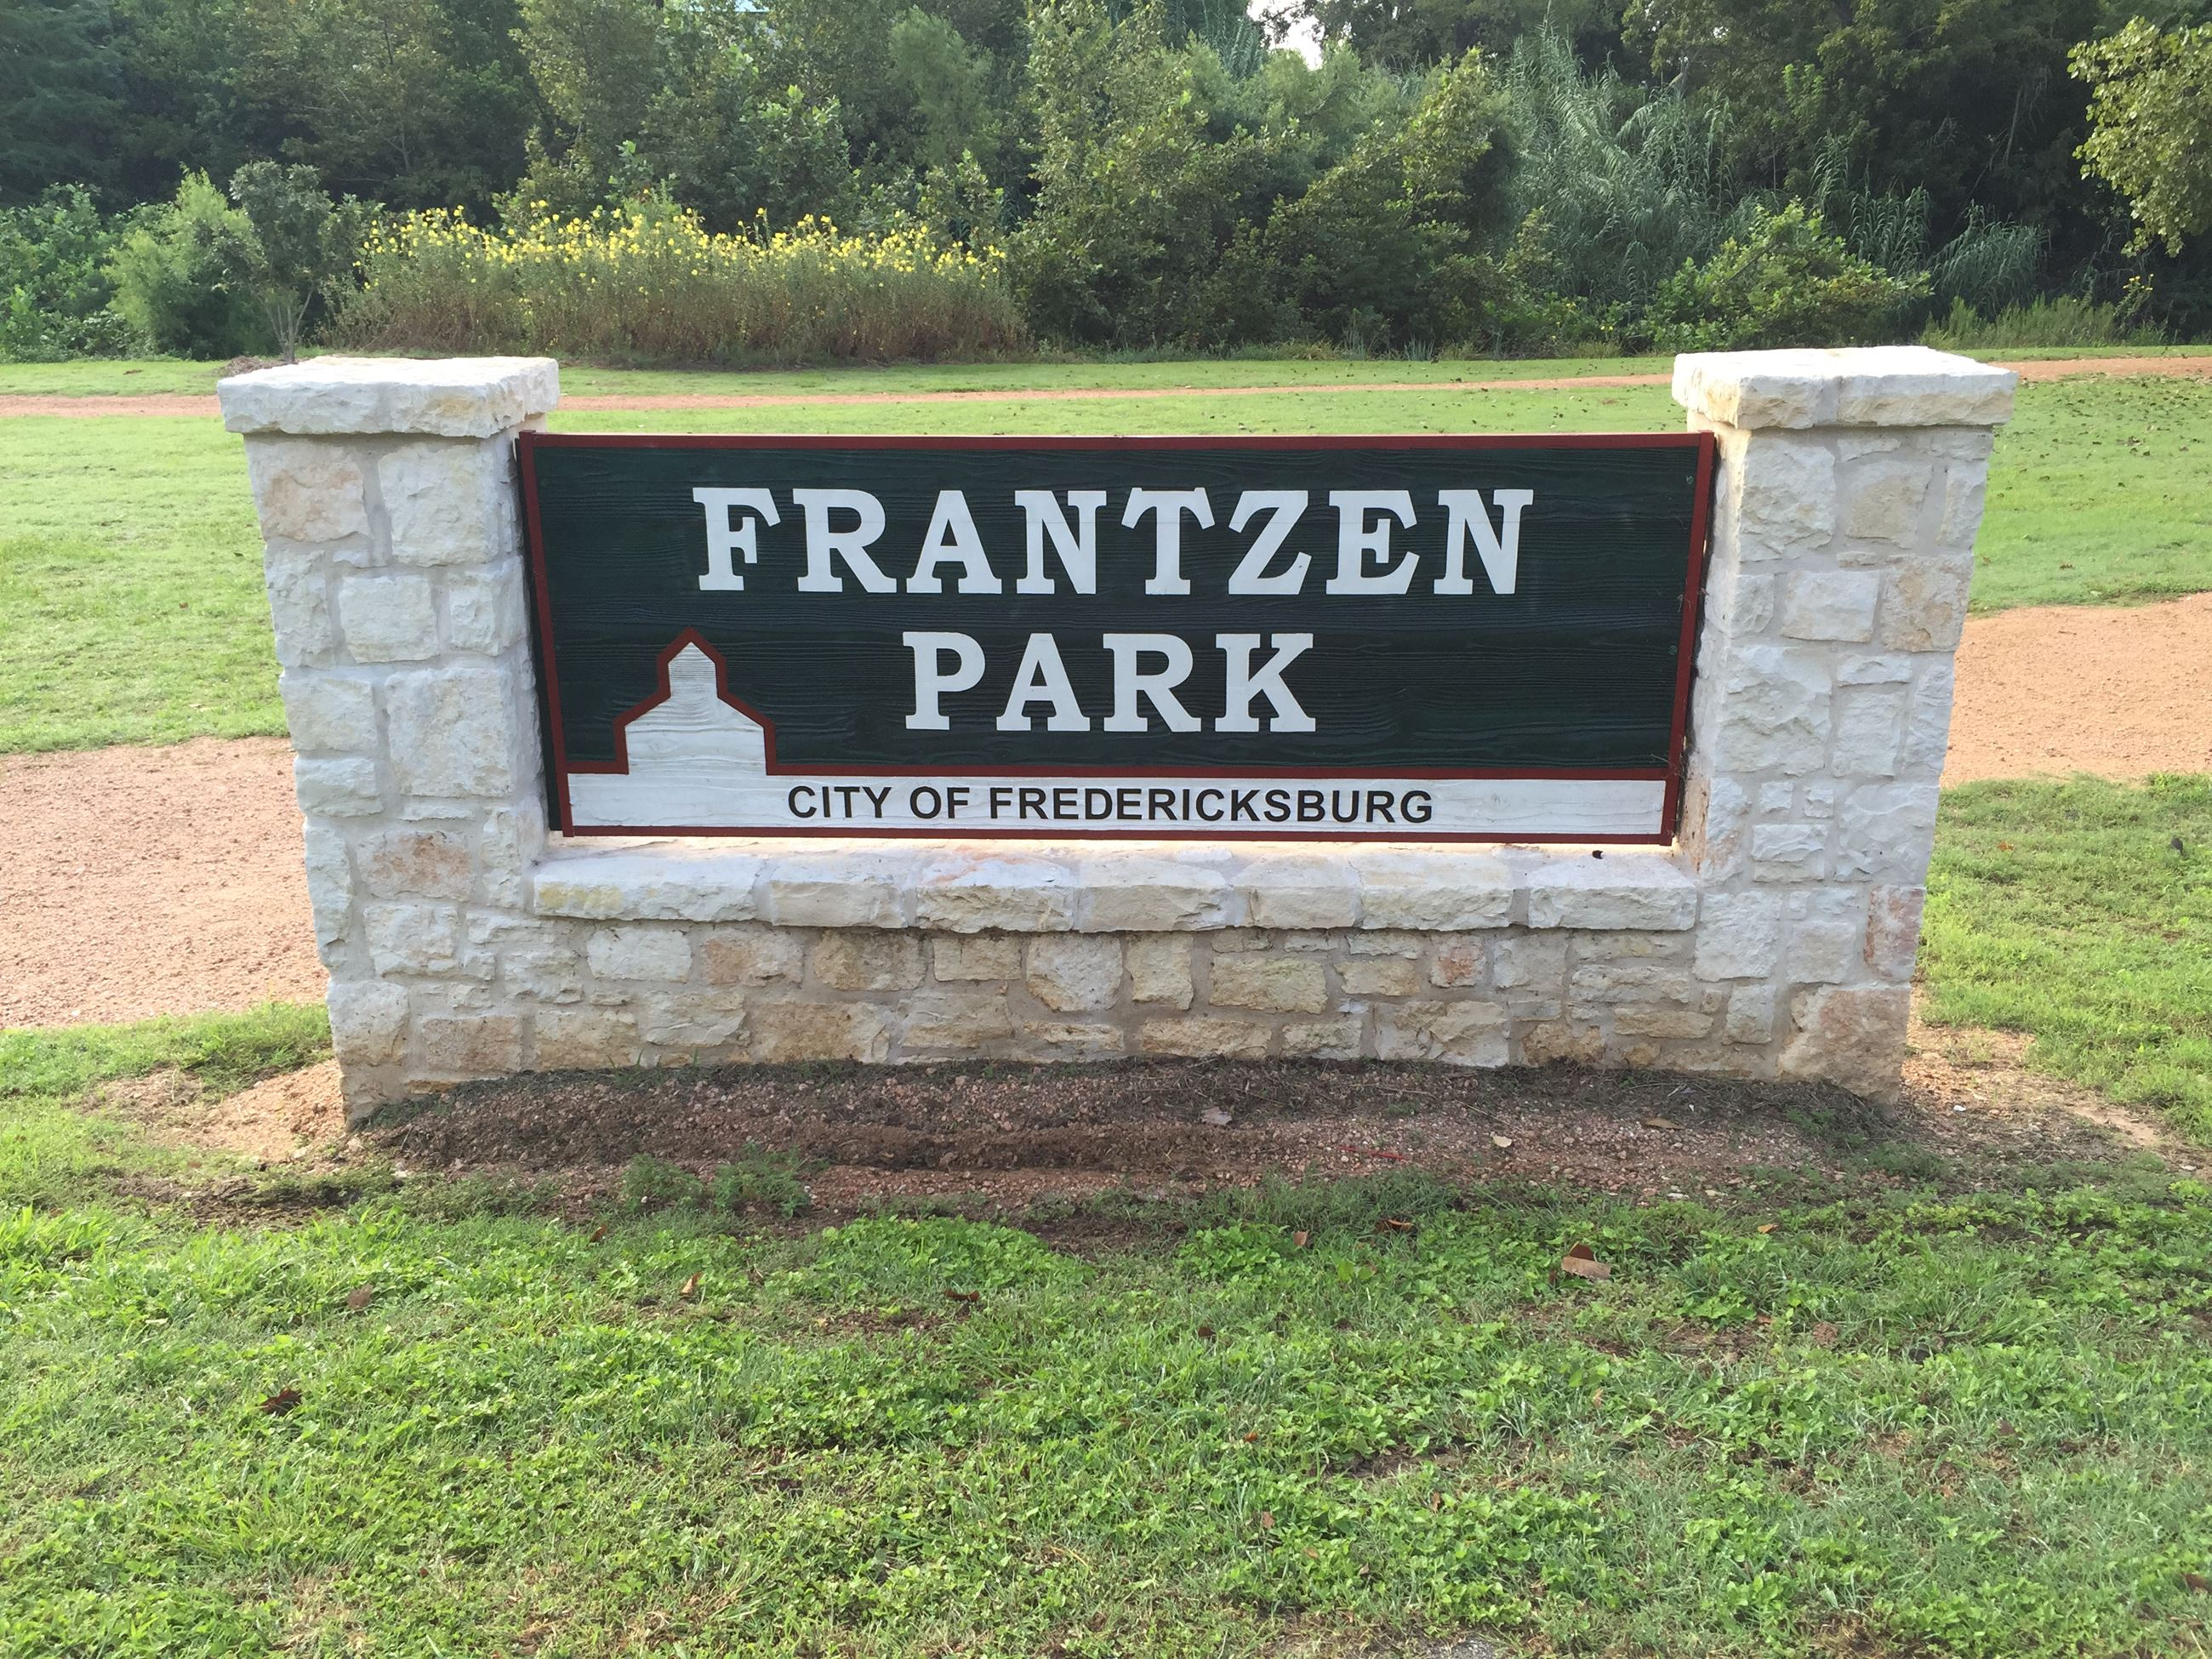 Frantzen Park entry sign